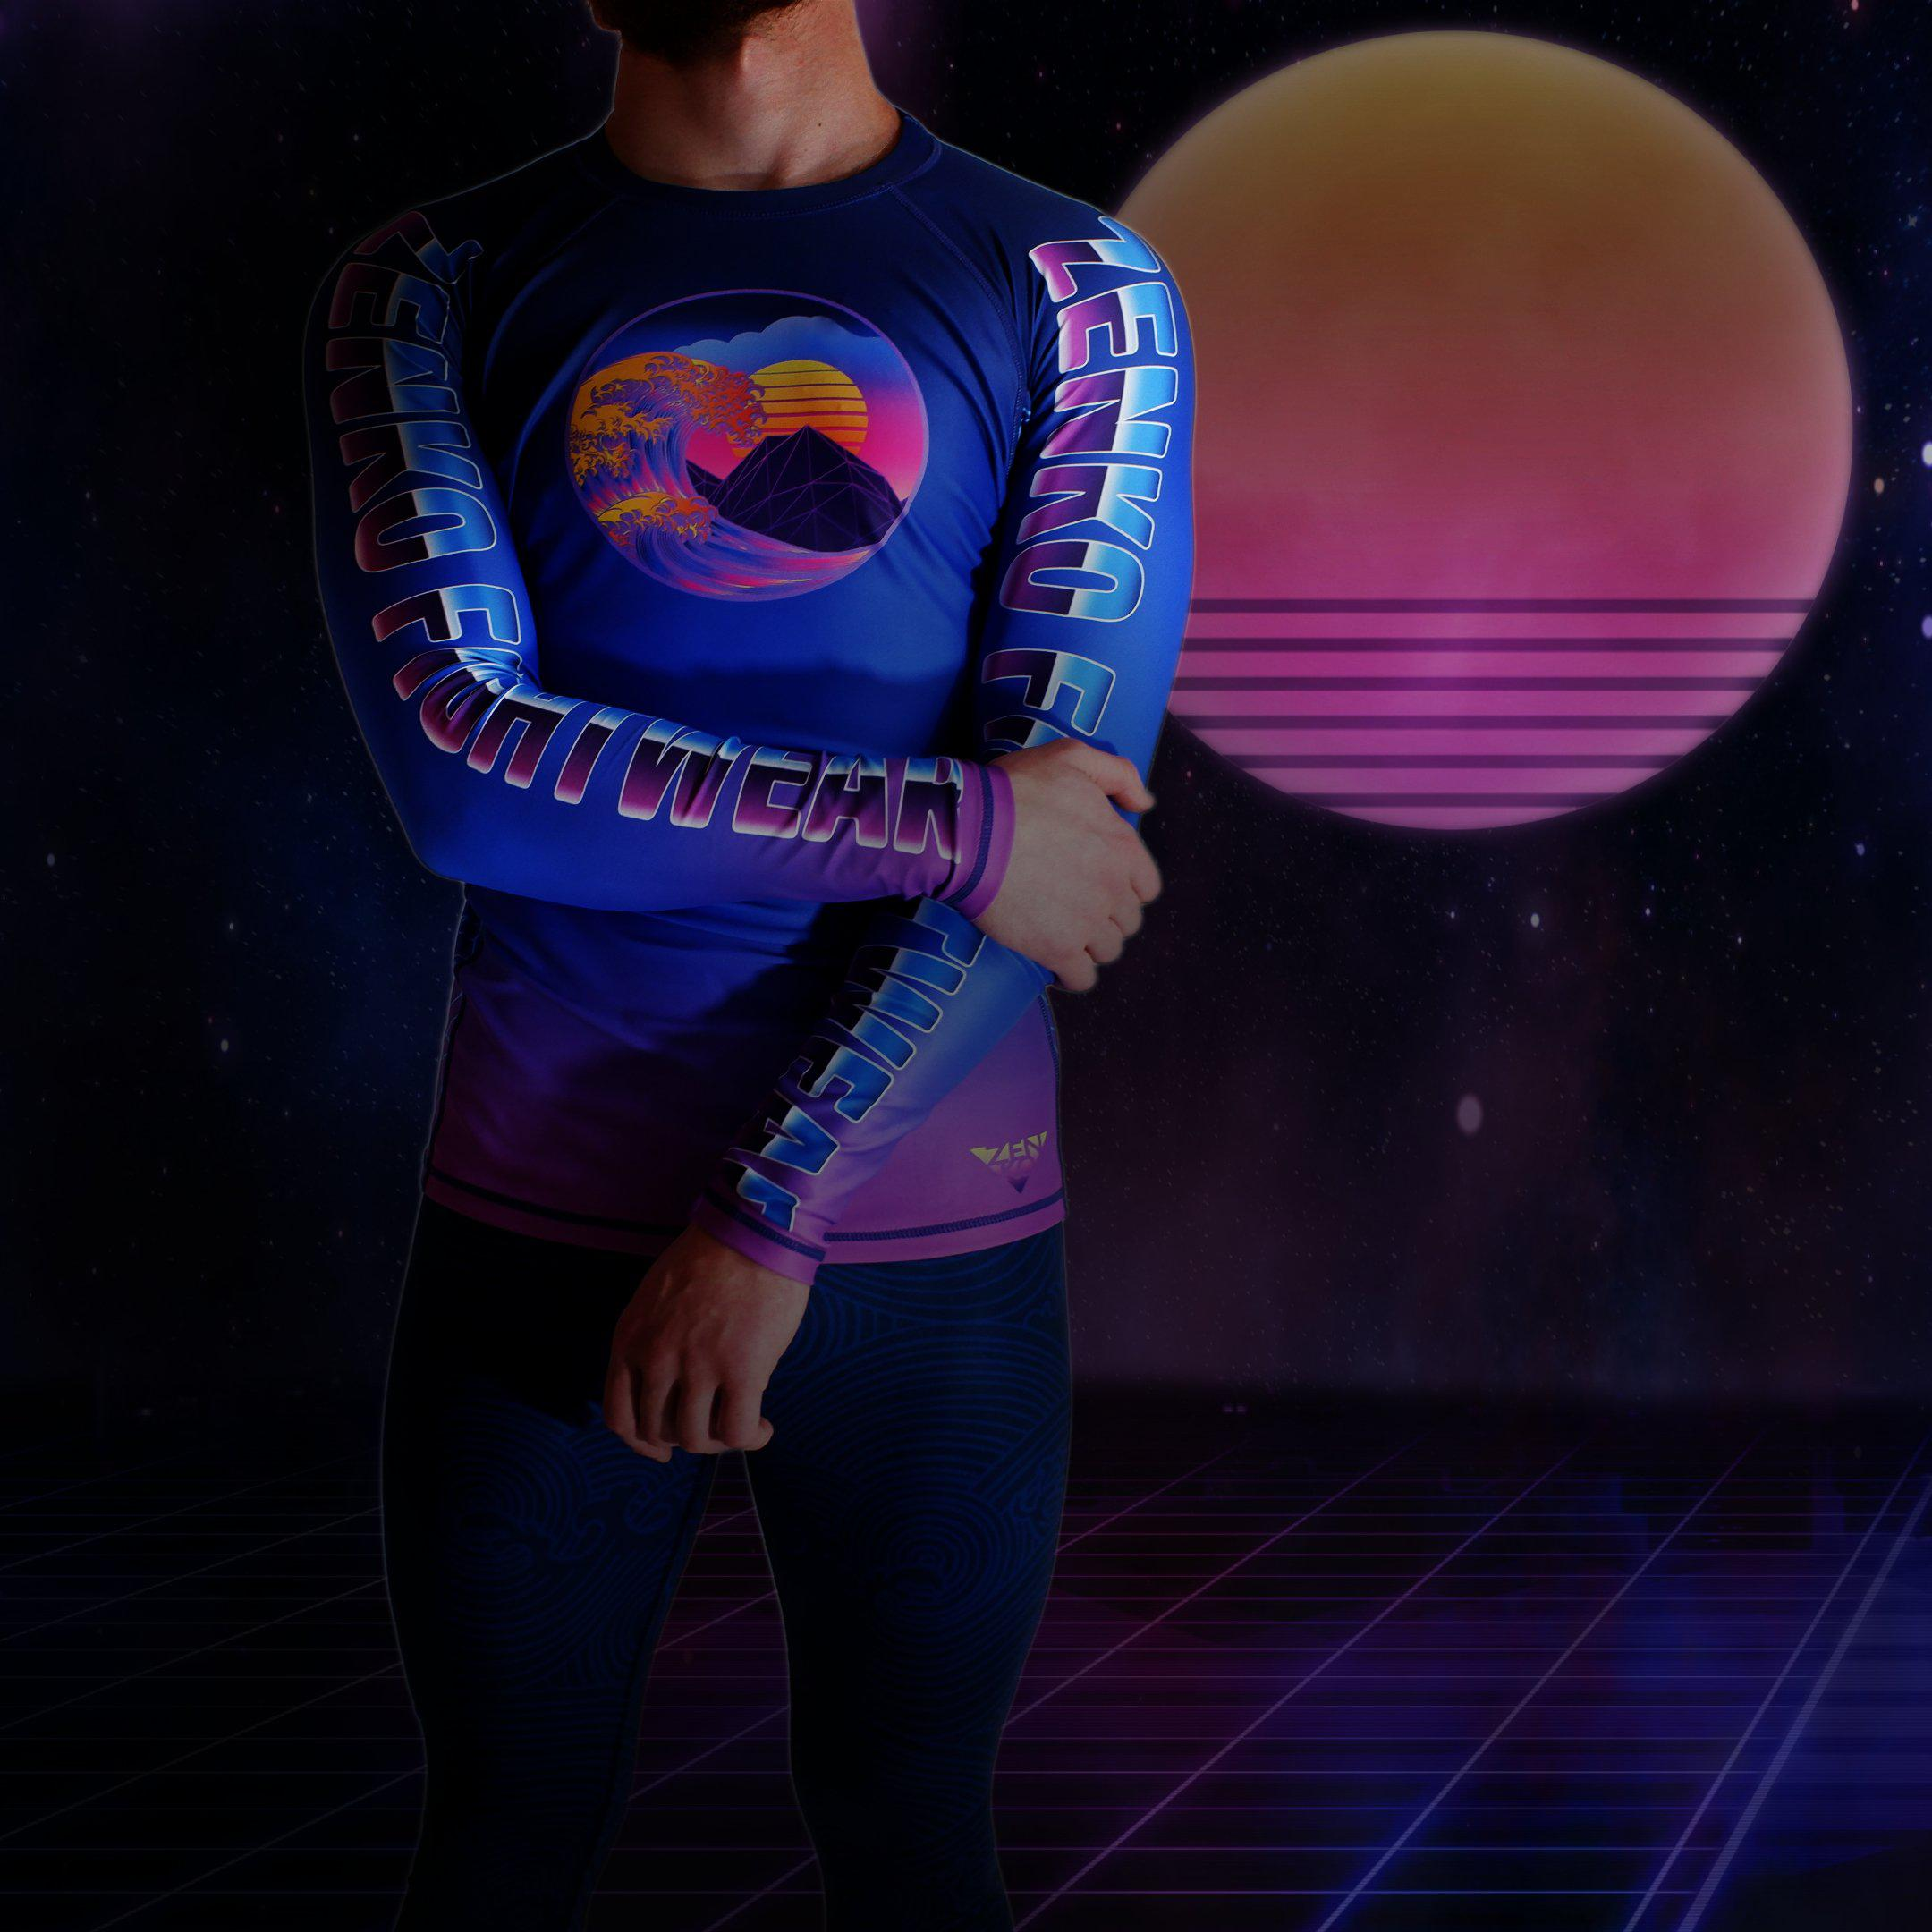 Zenko Fightwear Vaporwave RashguardZenko Fightwear Vaporwave Rashguard + The Great Wave Spats